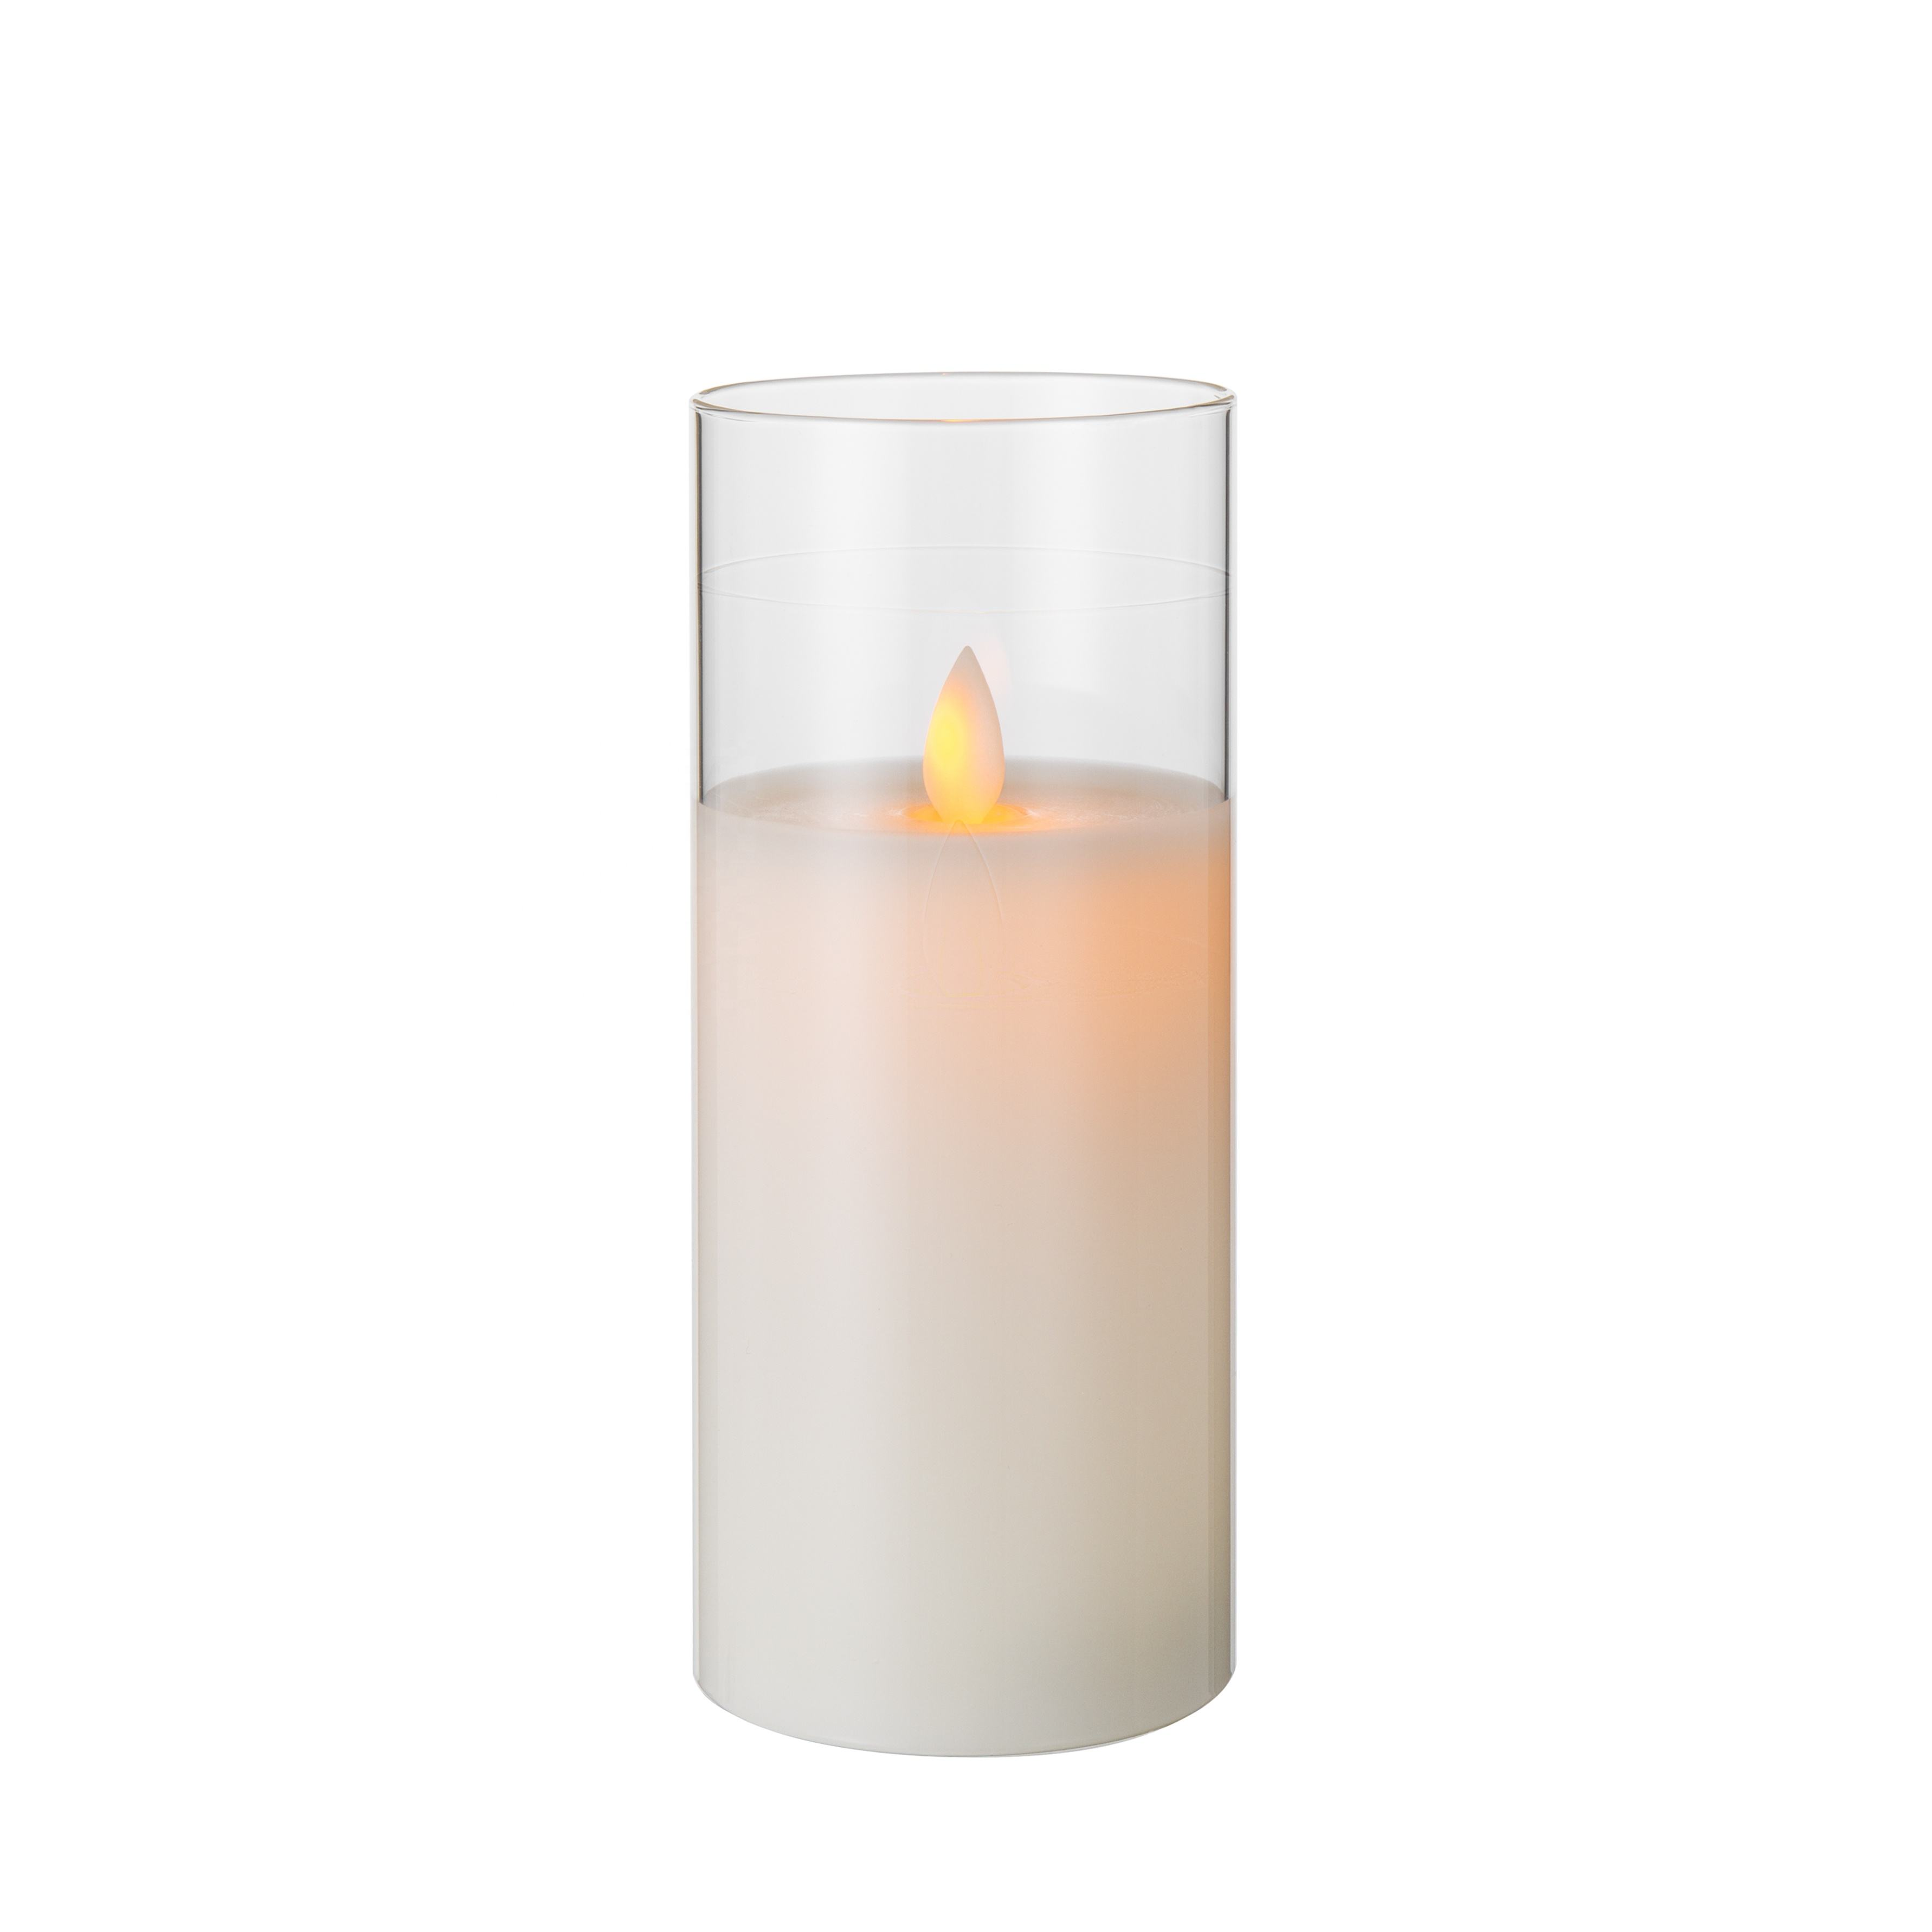 moving flameless smooth D7.5 H17.5 pillar white glass battery operated remote home decoration timer led candle wax